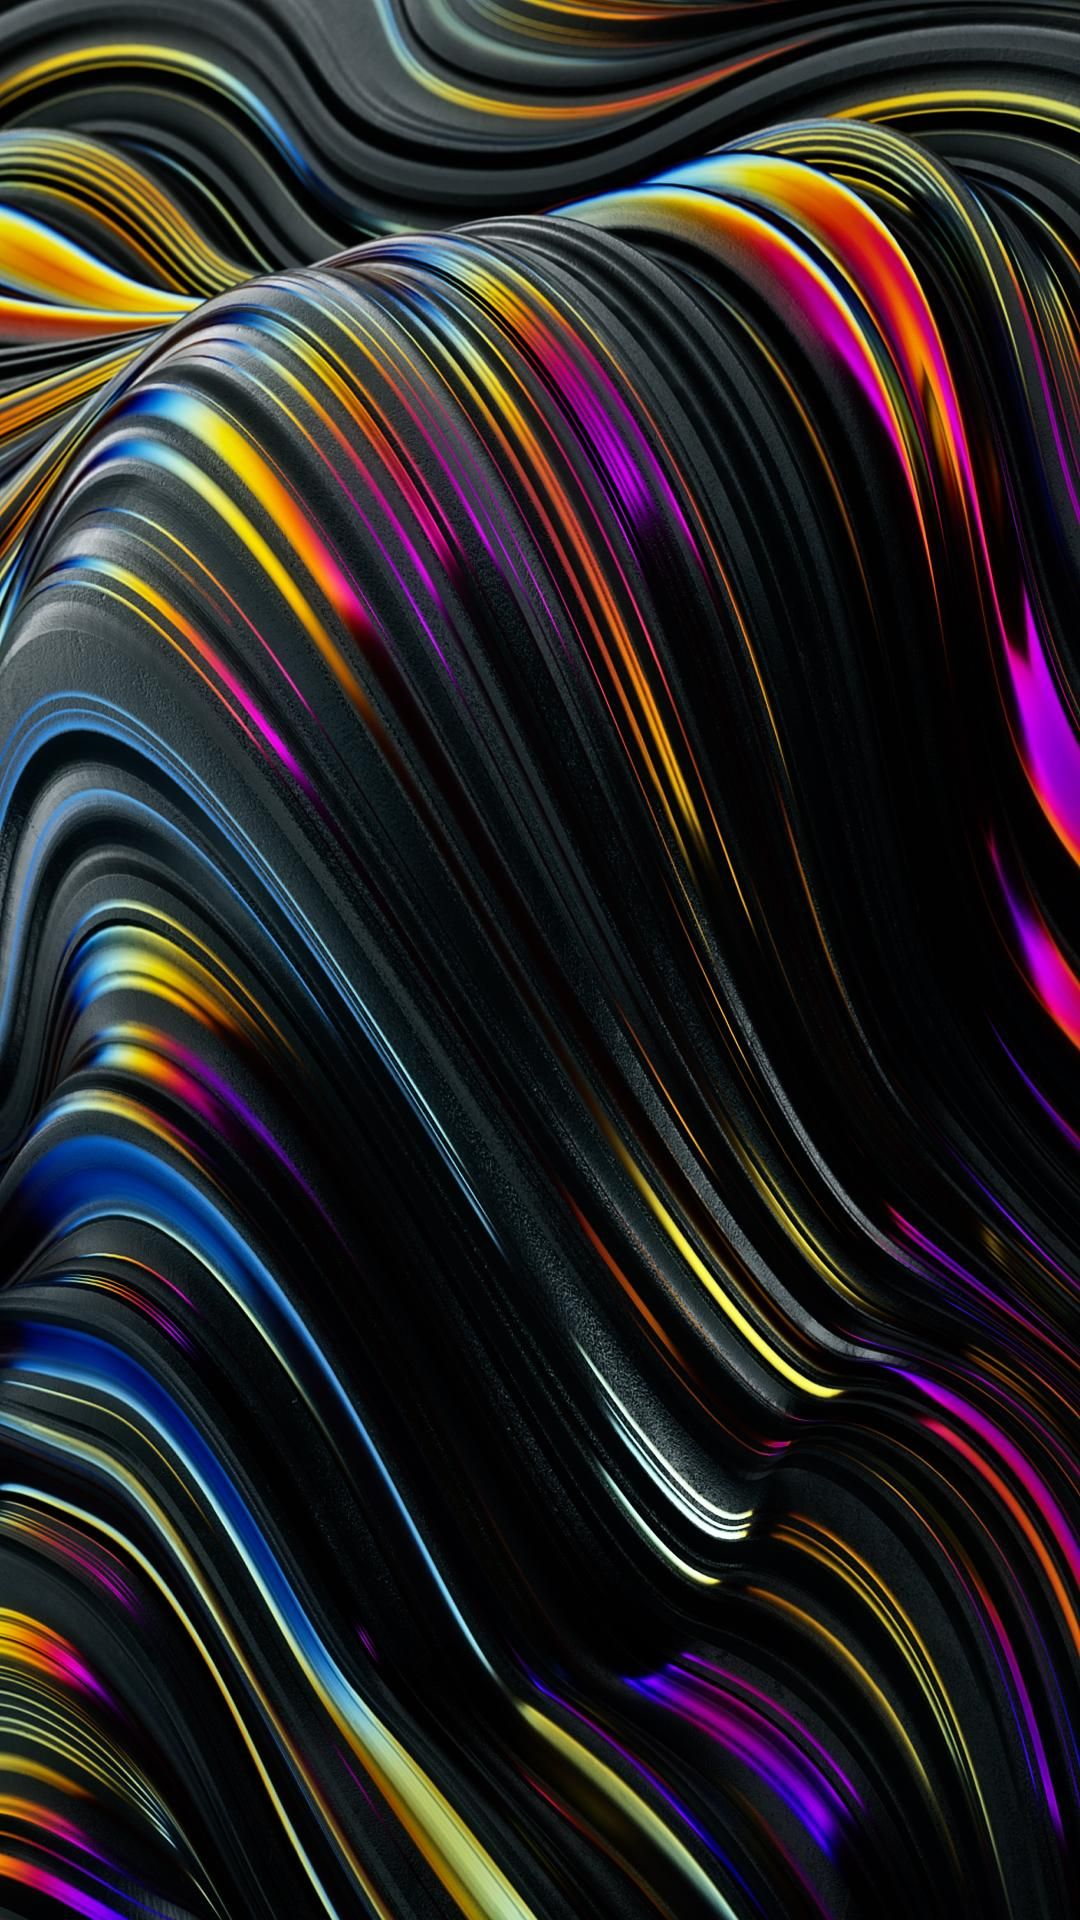 The Flow (With images) Phone wallpaper, Abstract